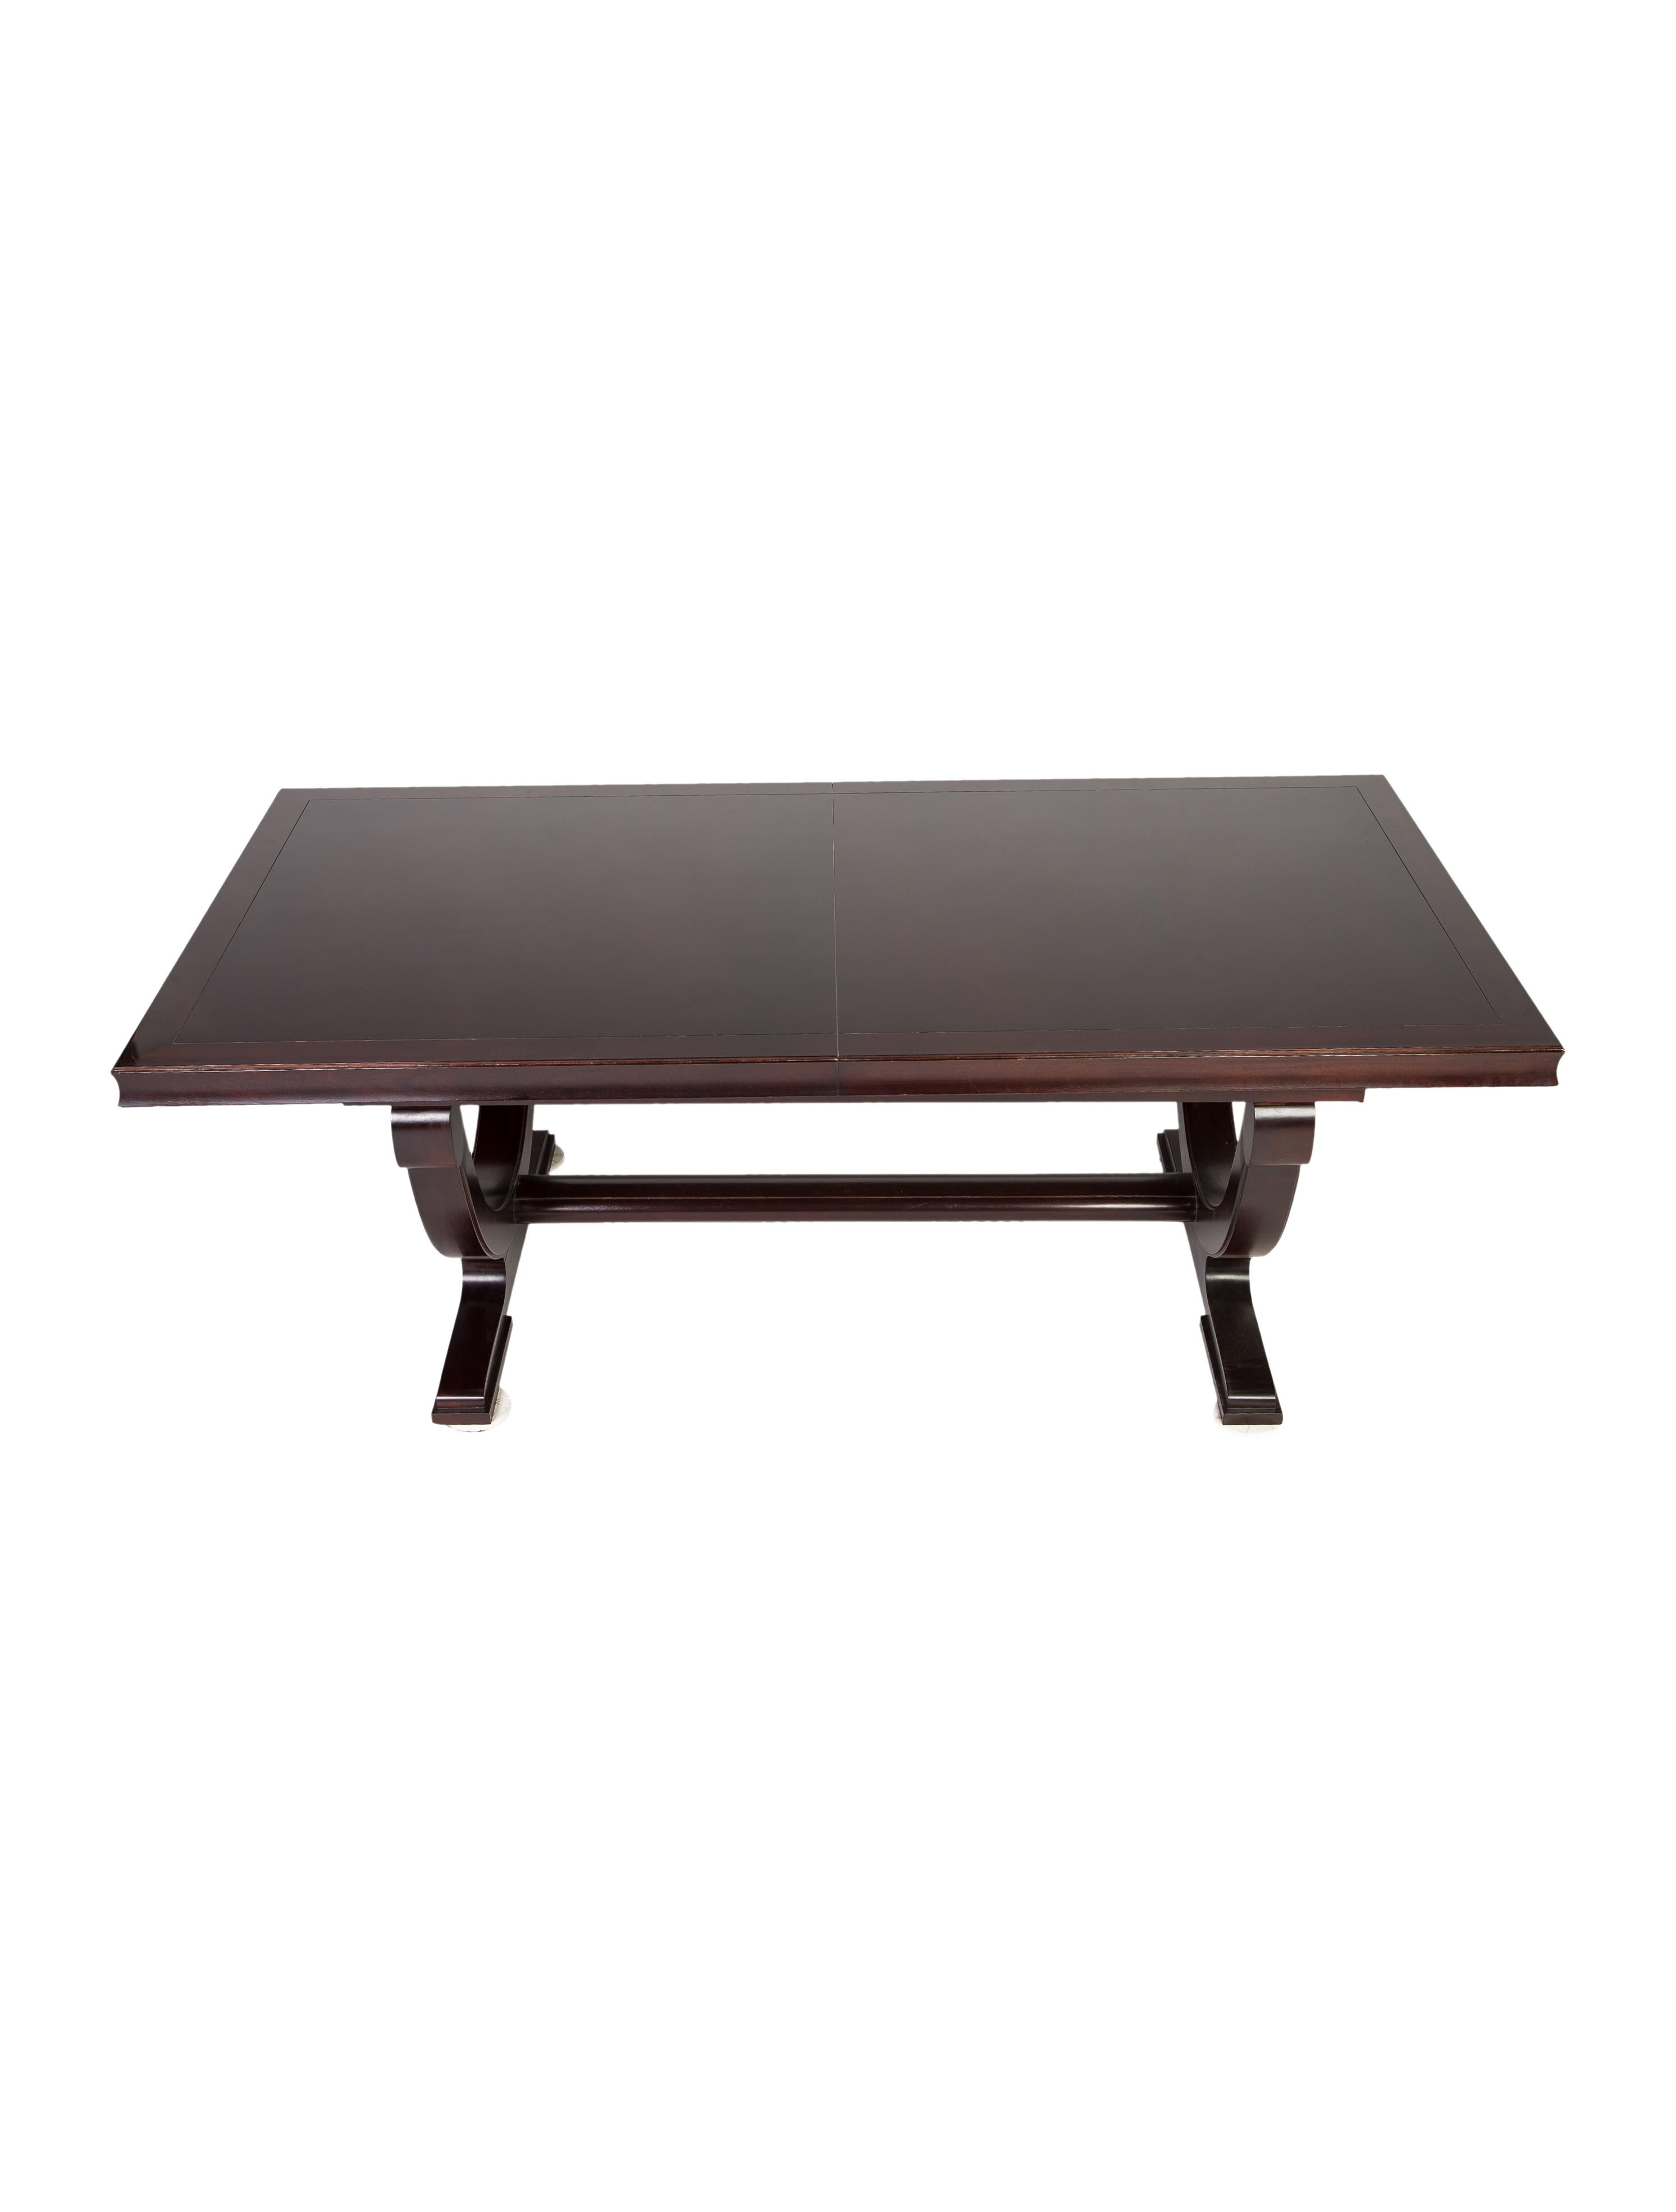 Baker barbara barry collection dining table furniture baker20027 the realreal Barbara barry coffee table